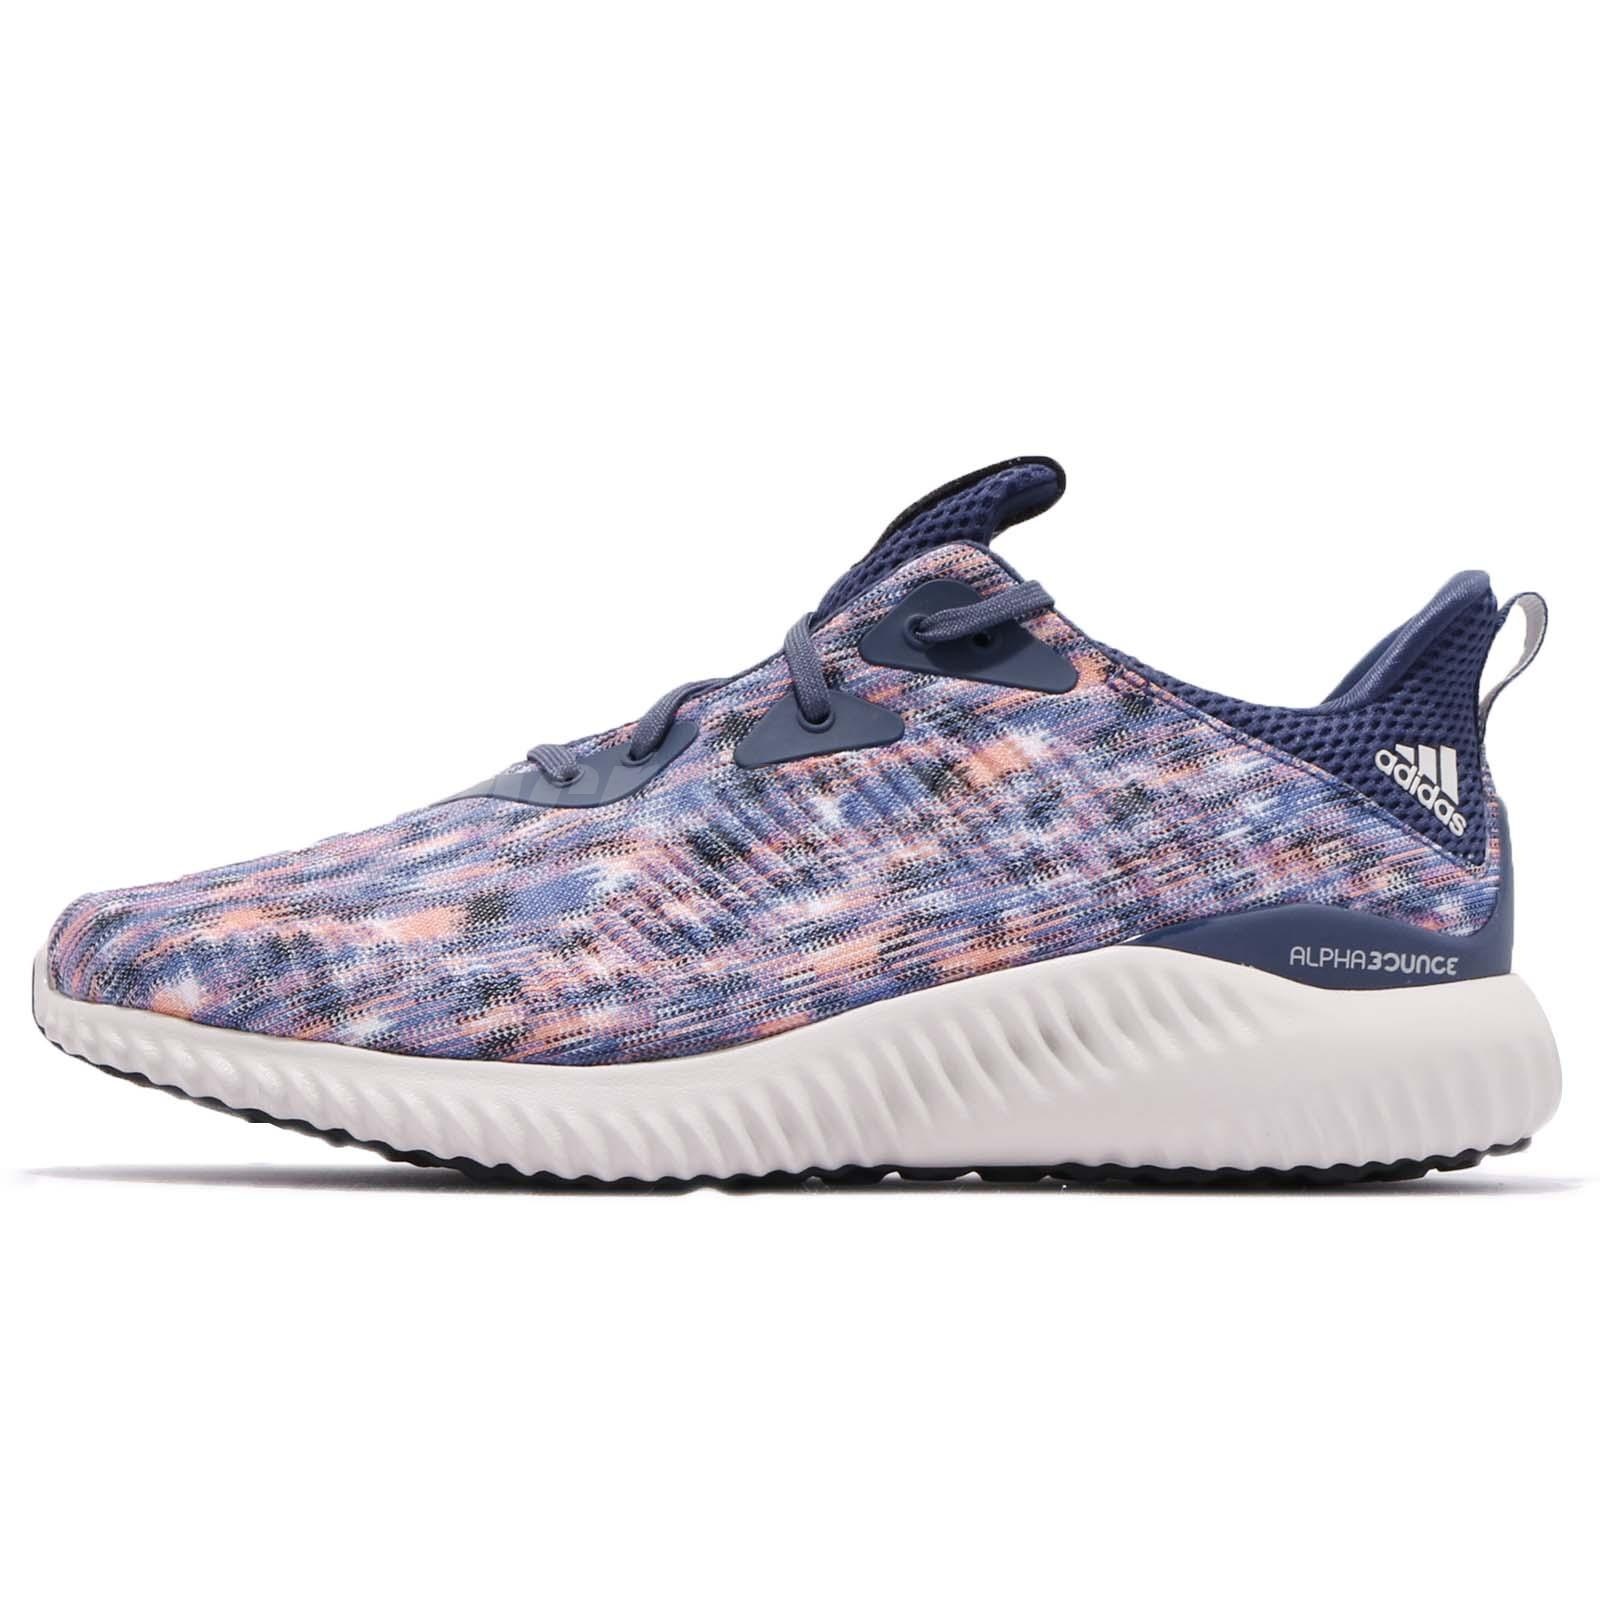 1a8e7fcba6f44 adidas Alphabounce SD M Blue Multi Color Men Running Shoes Sneakers CQ0776